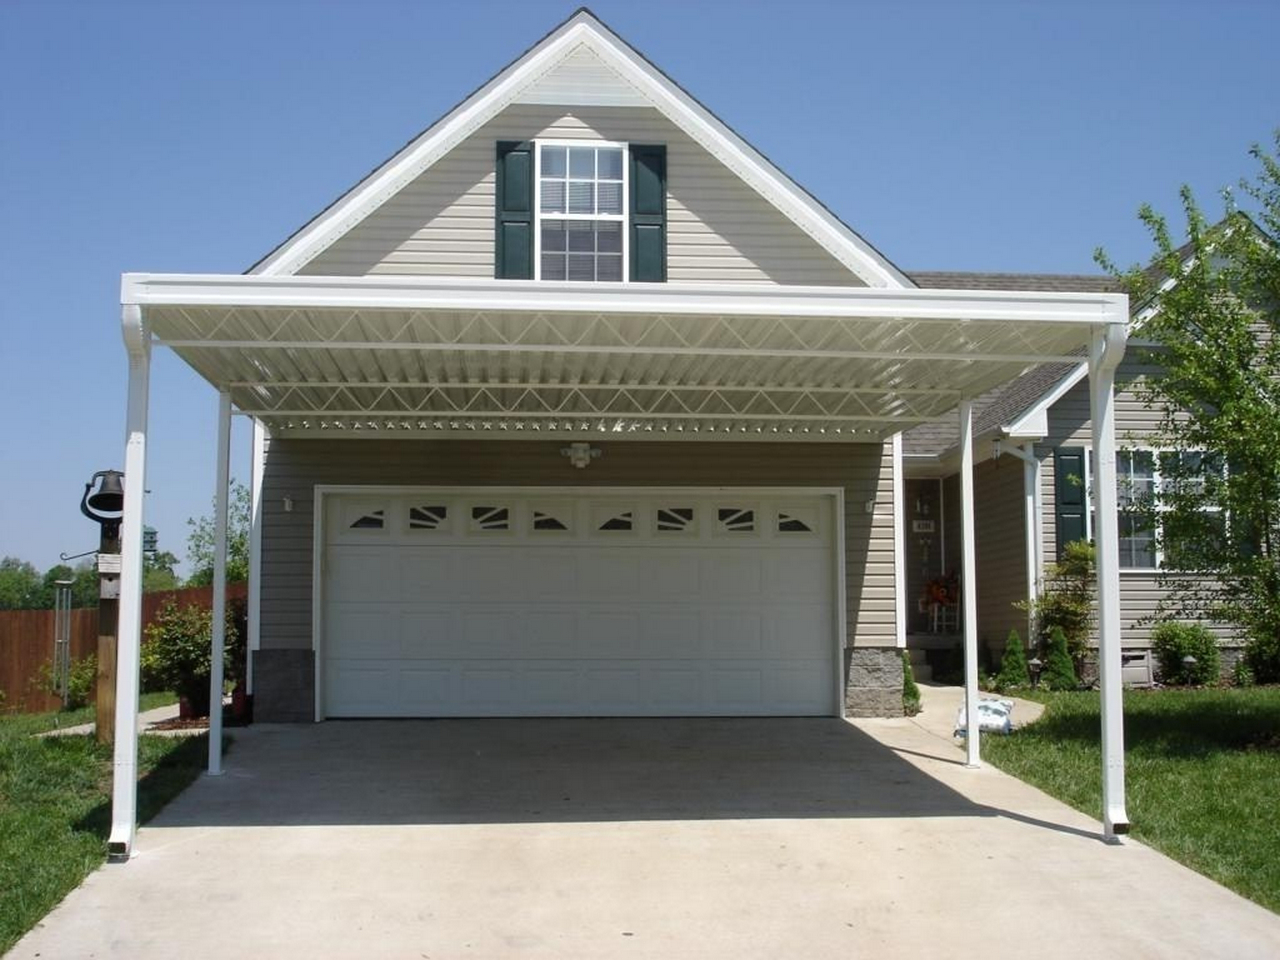 Building a Carport-carports-attached-to-house-pictures-carport-attached-to-side-of-house